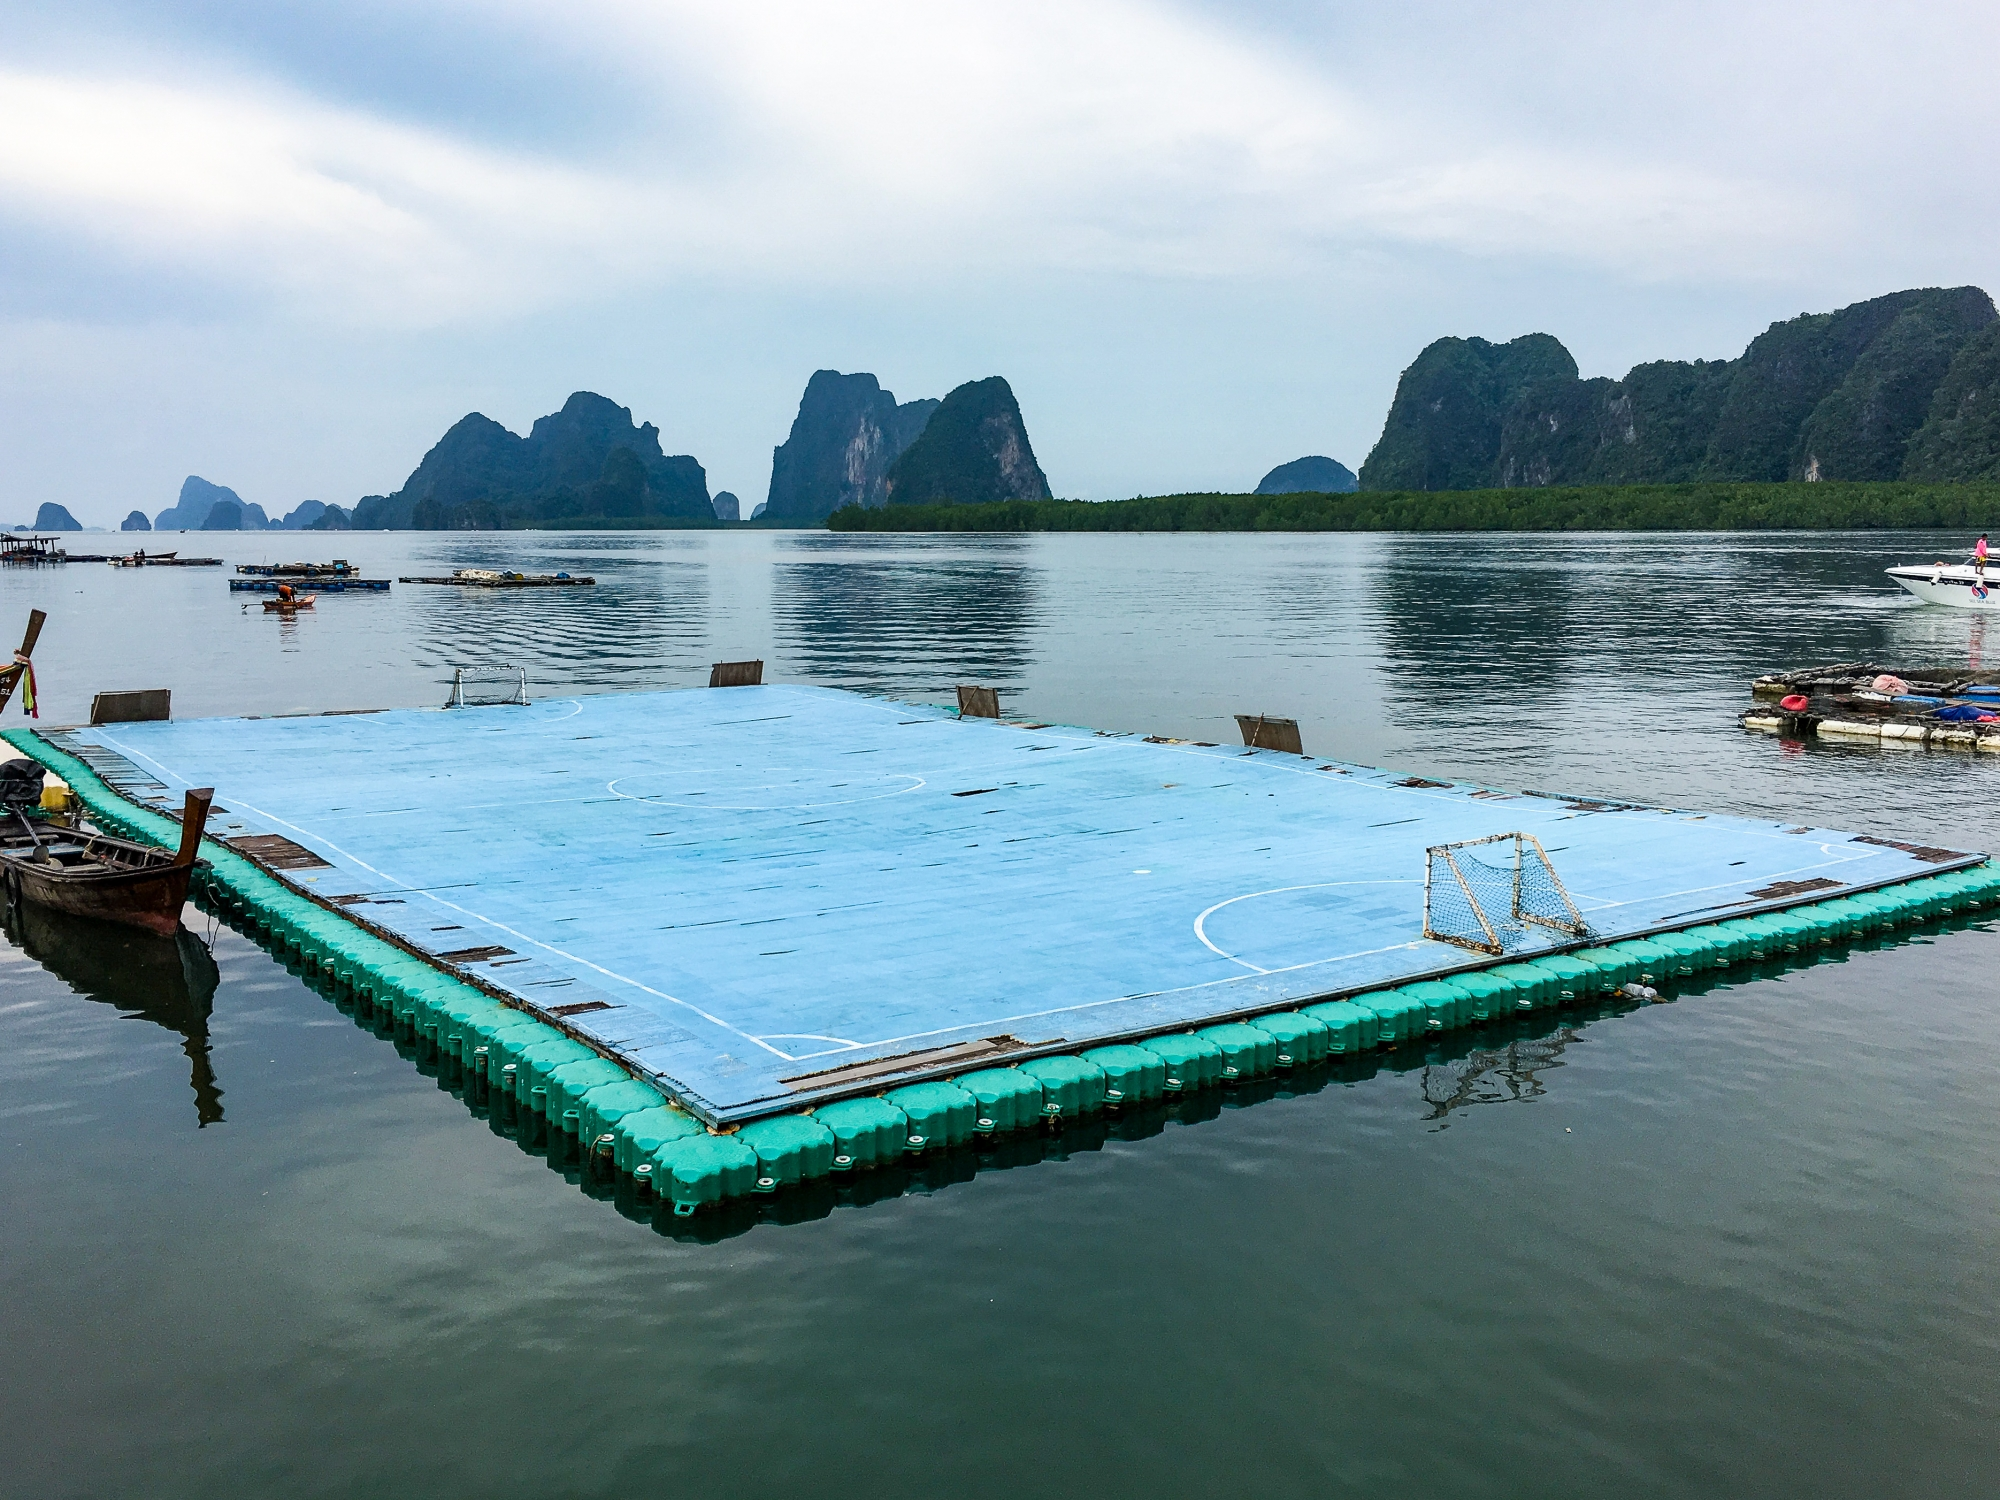 Floating Football Pitch at Panyee Village (Koh Panyee)